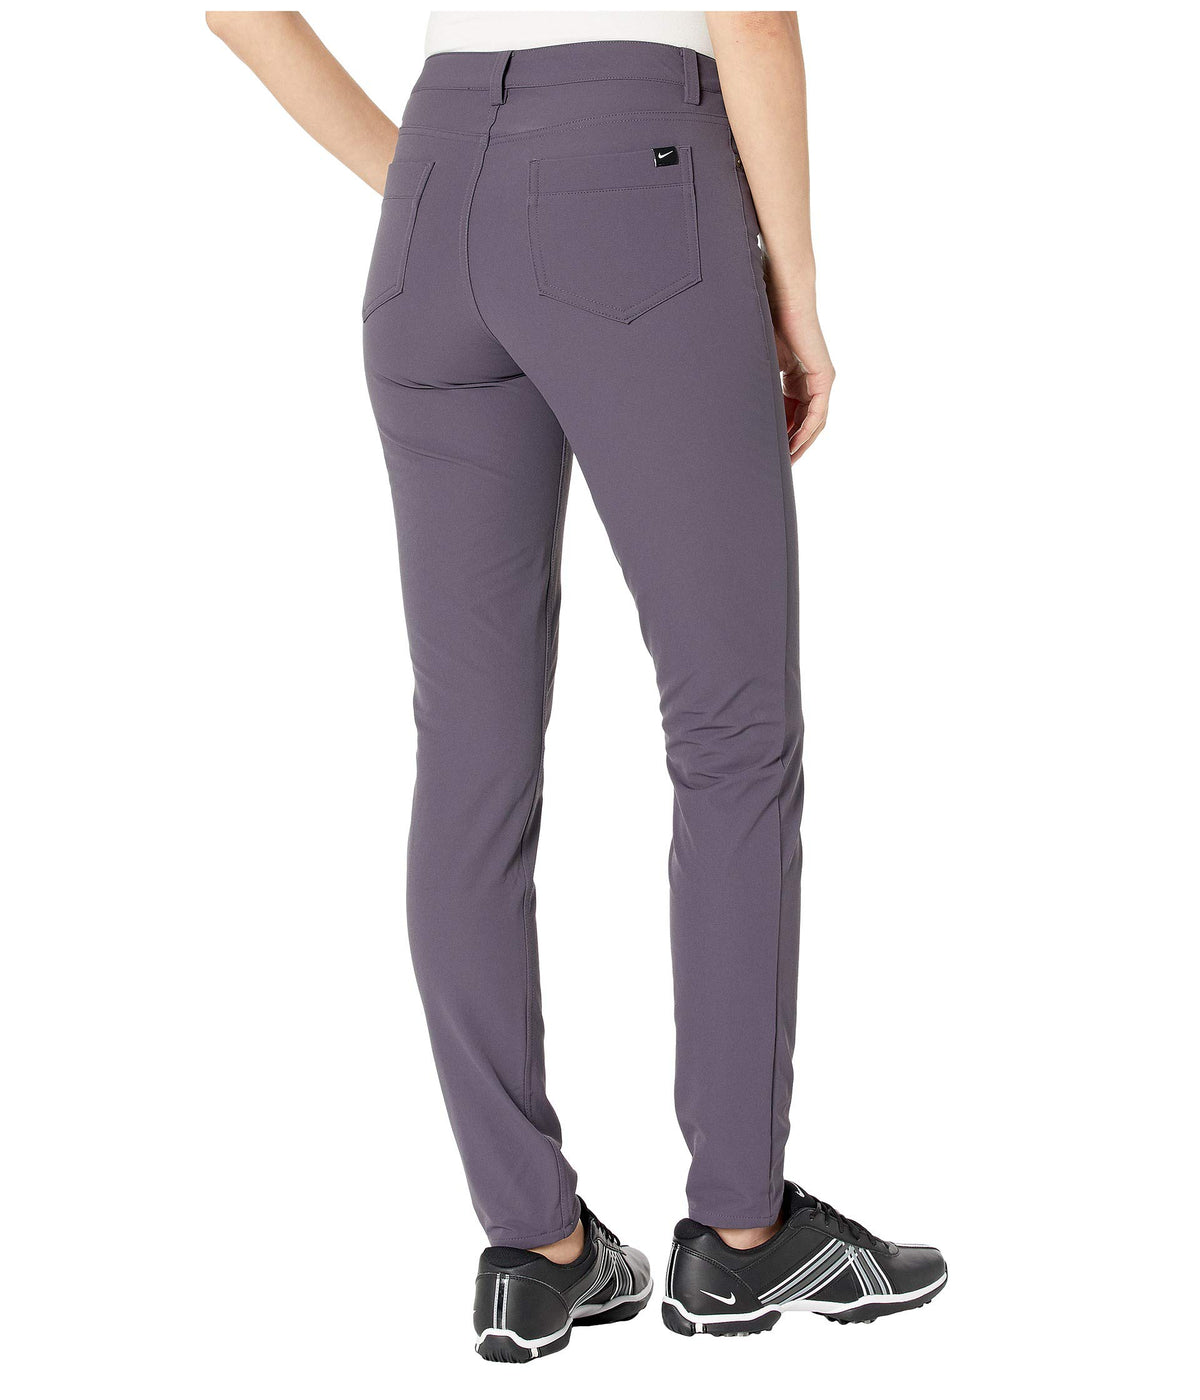 "Repel 30"" Slim Pants"